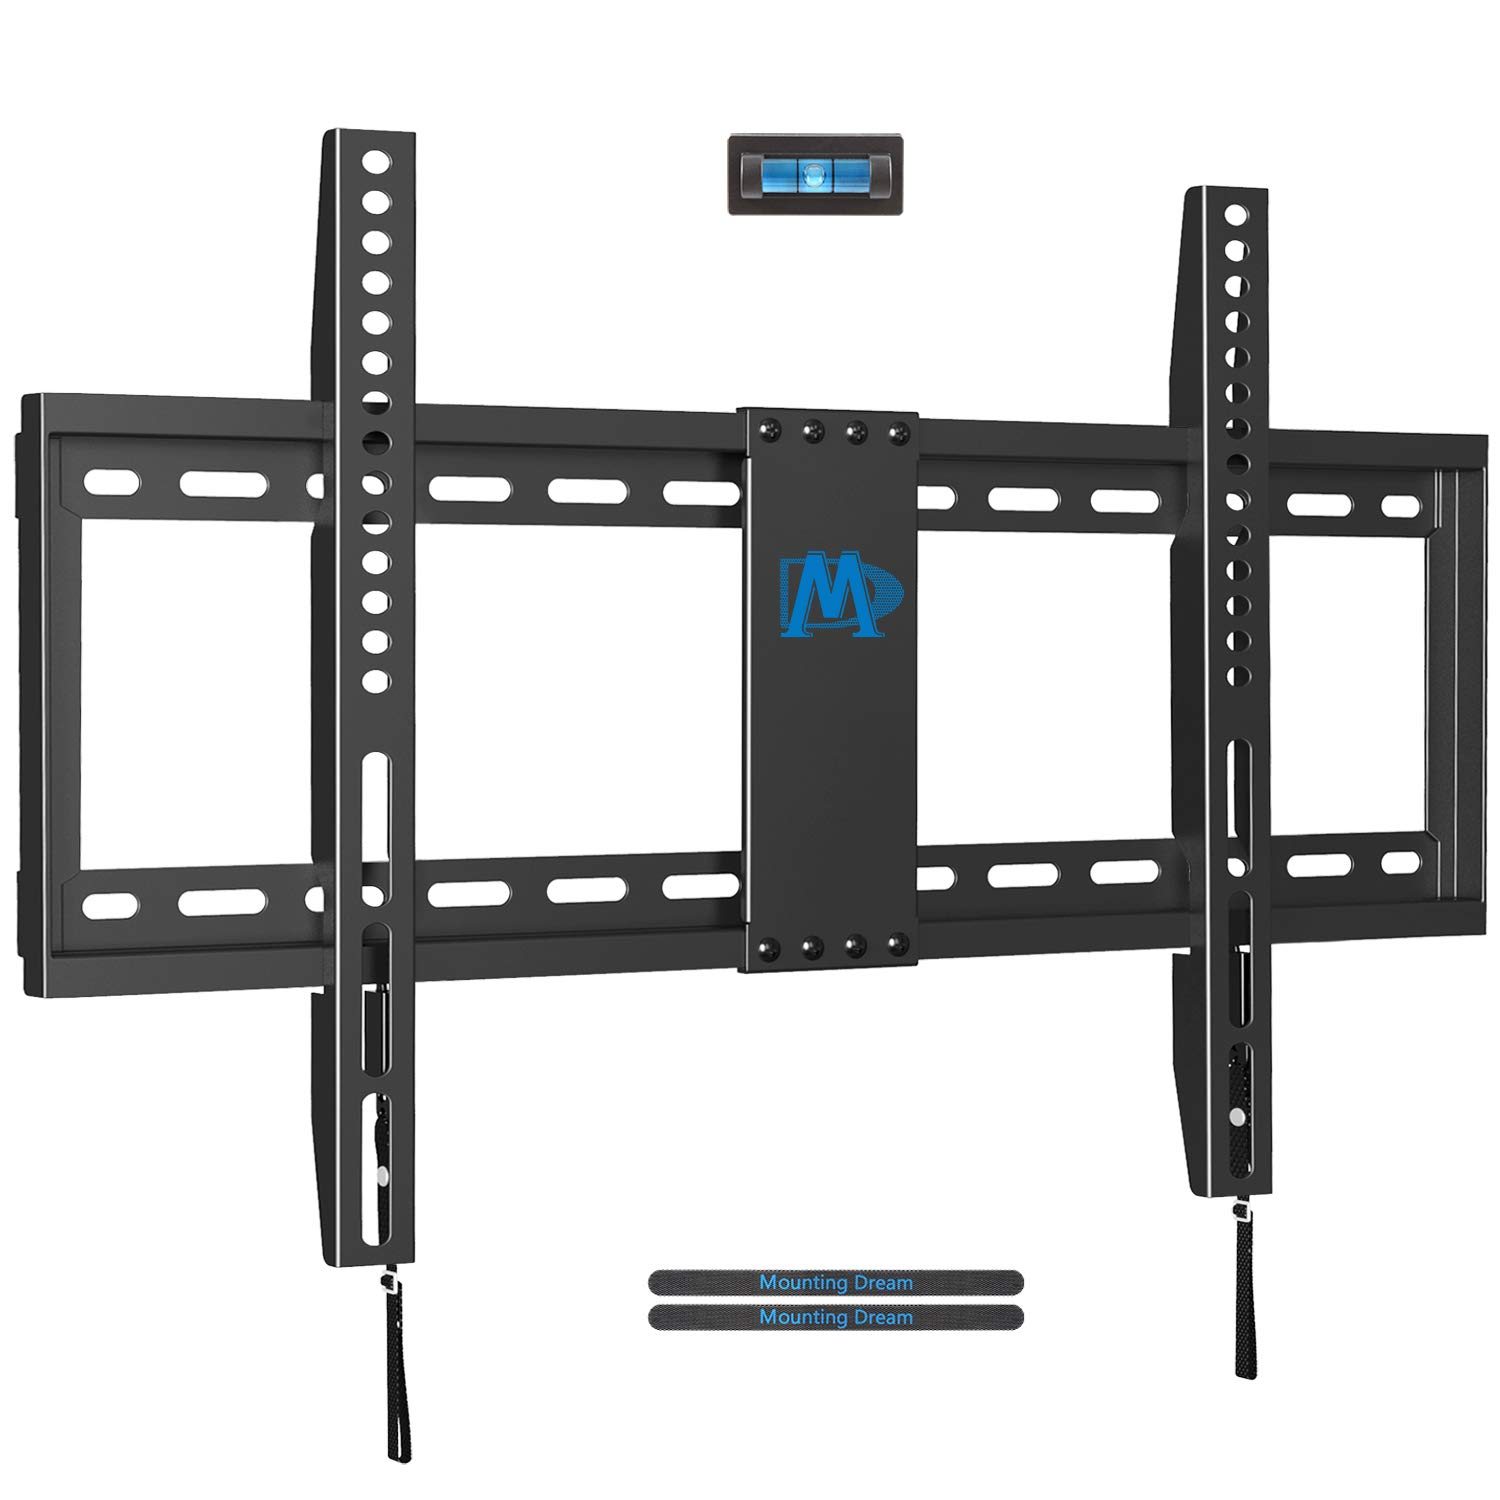 e53c201d0e79 Mounting Dream Low Profile Fixed TV Wall Mount Bracket for Most 42-70 Inch  LED